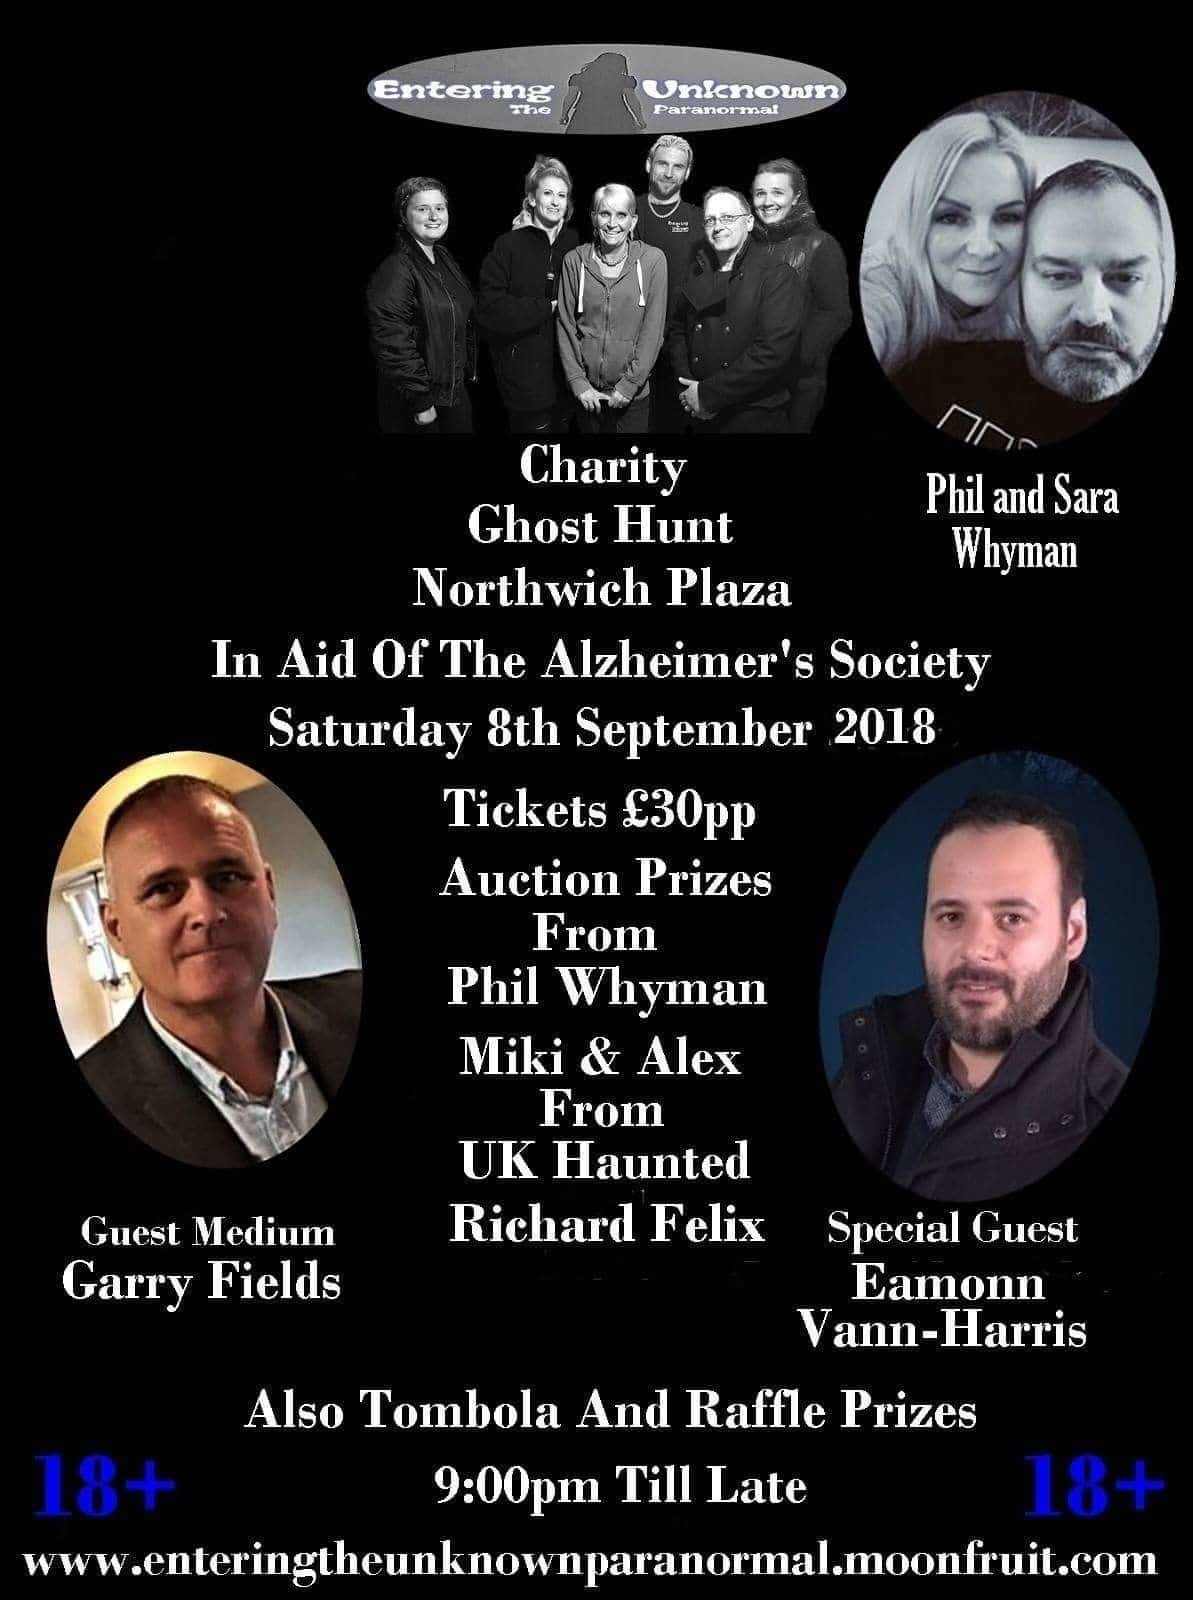 Charity ghost hunt